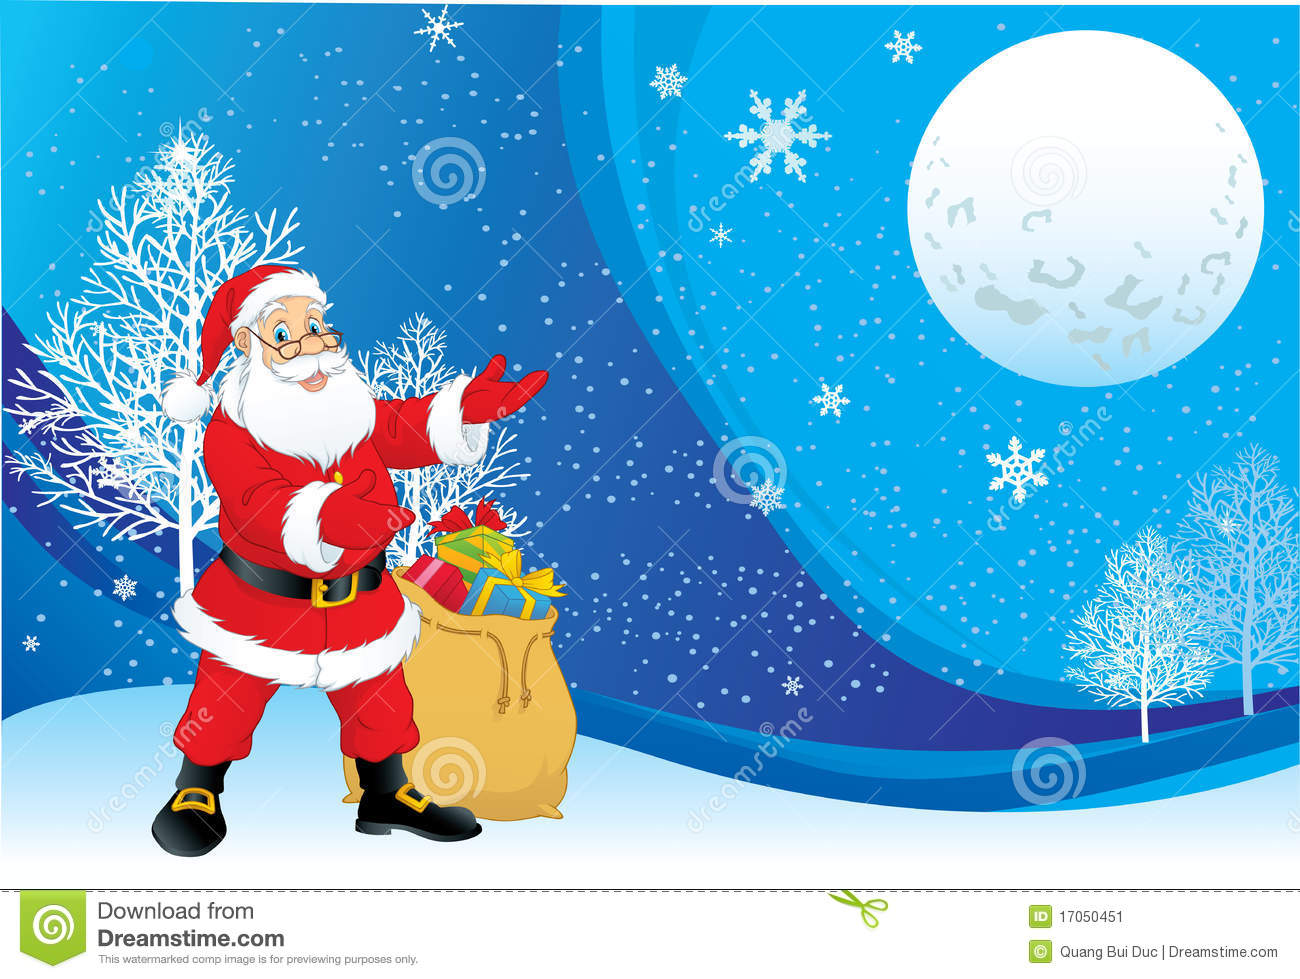 christmas santa claus background stock vector illustration of blue heaven 17050451 dreamstime com